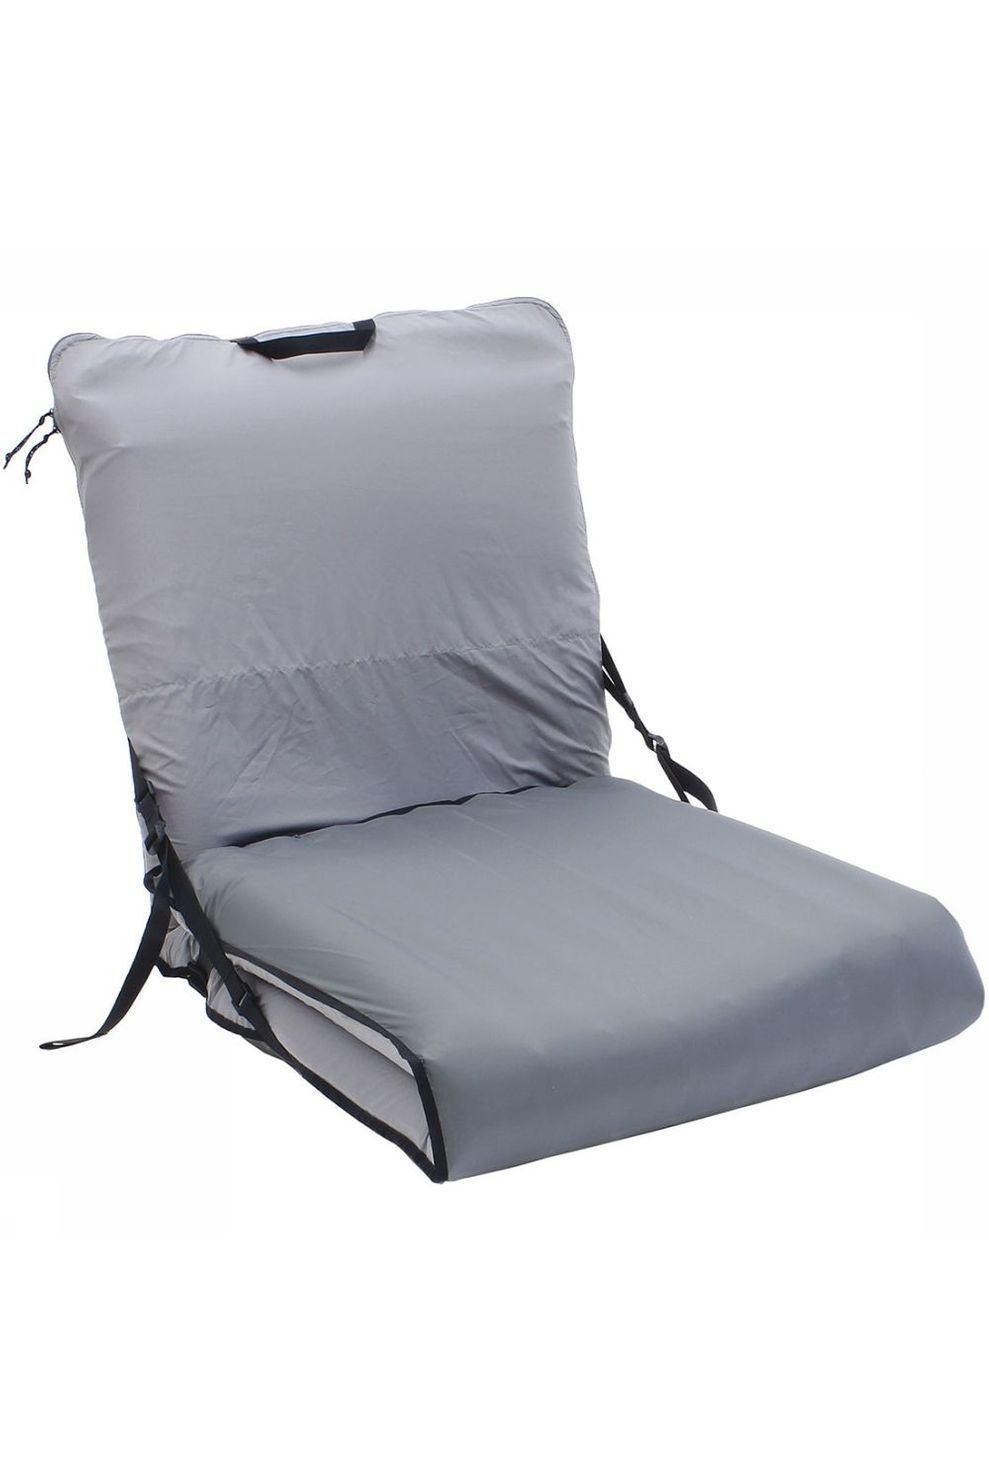 Exped Chairkit M - / Transparant - Maat: M